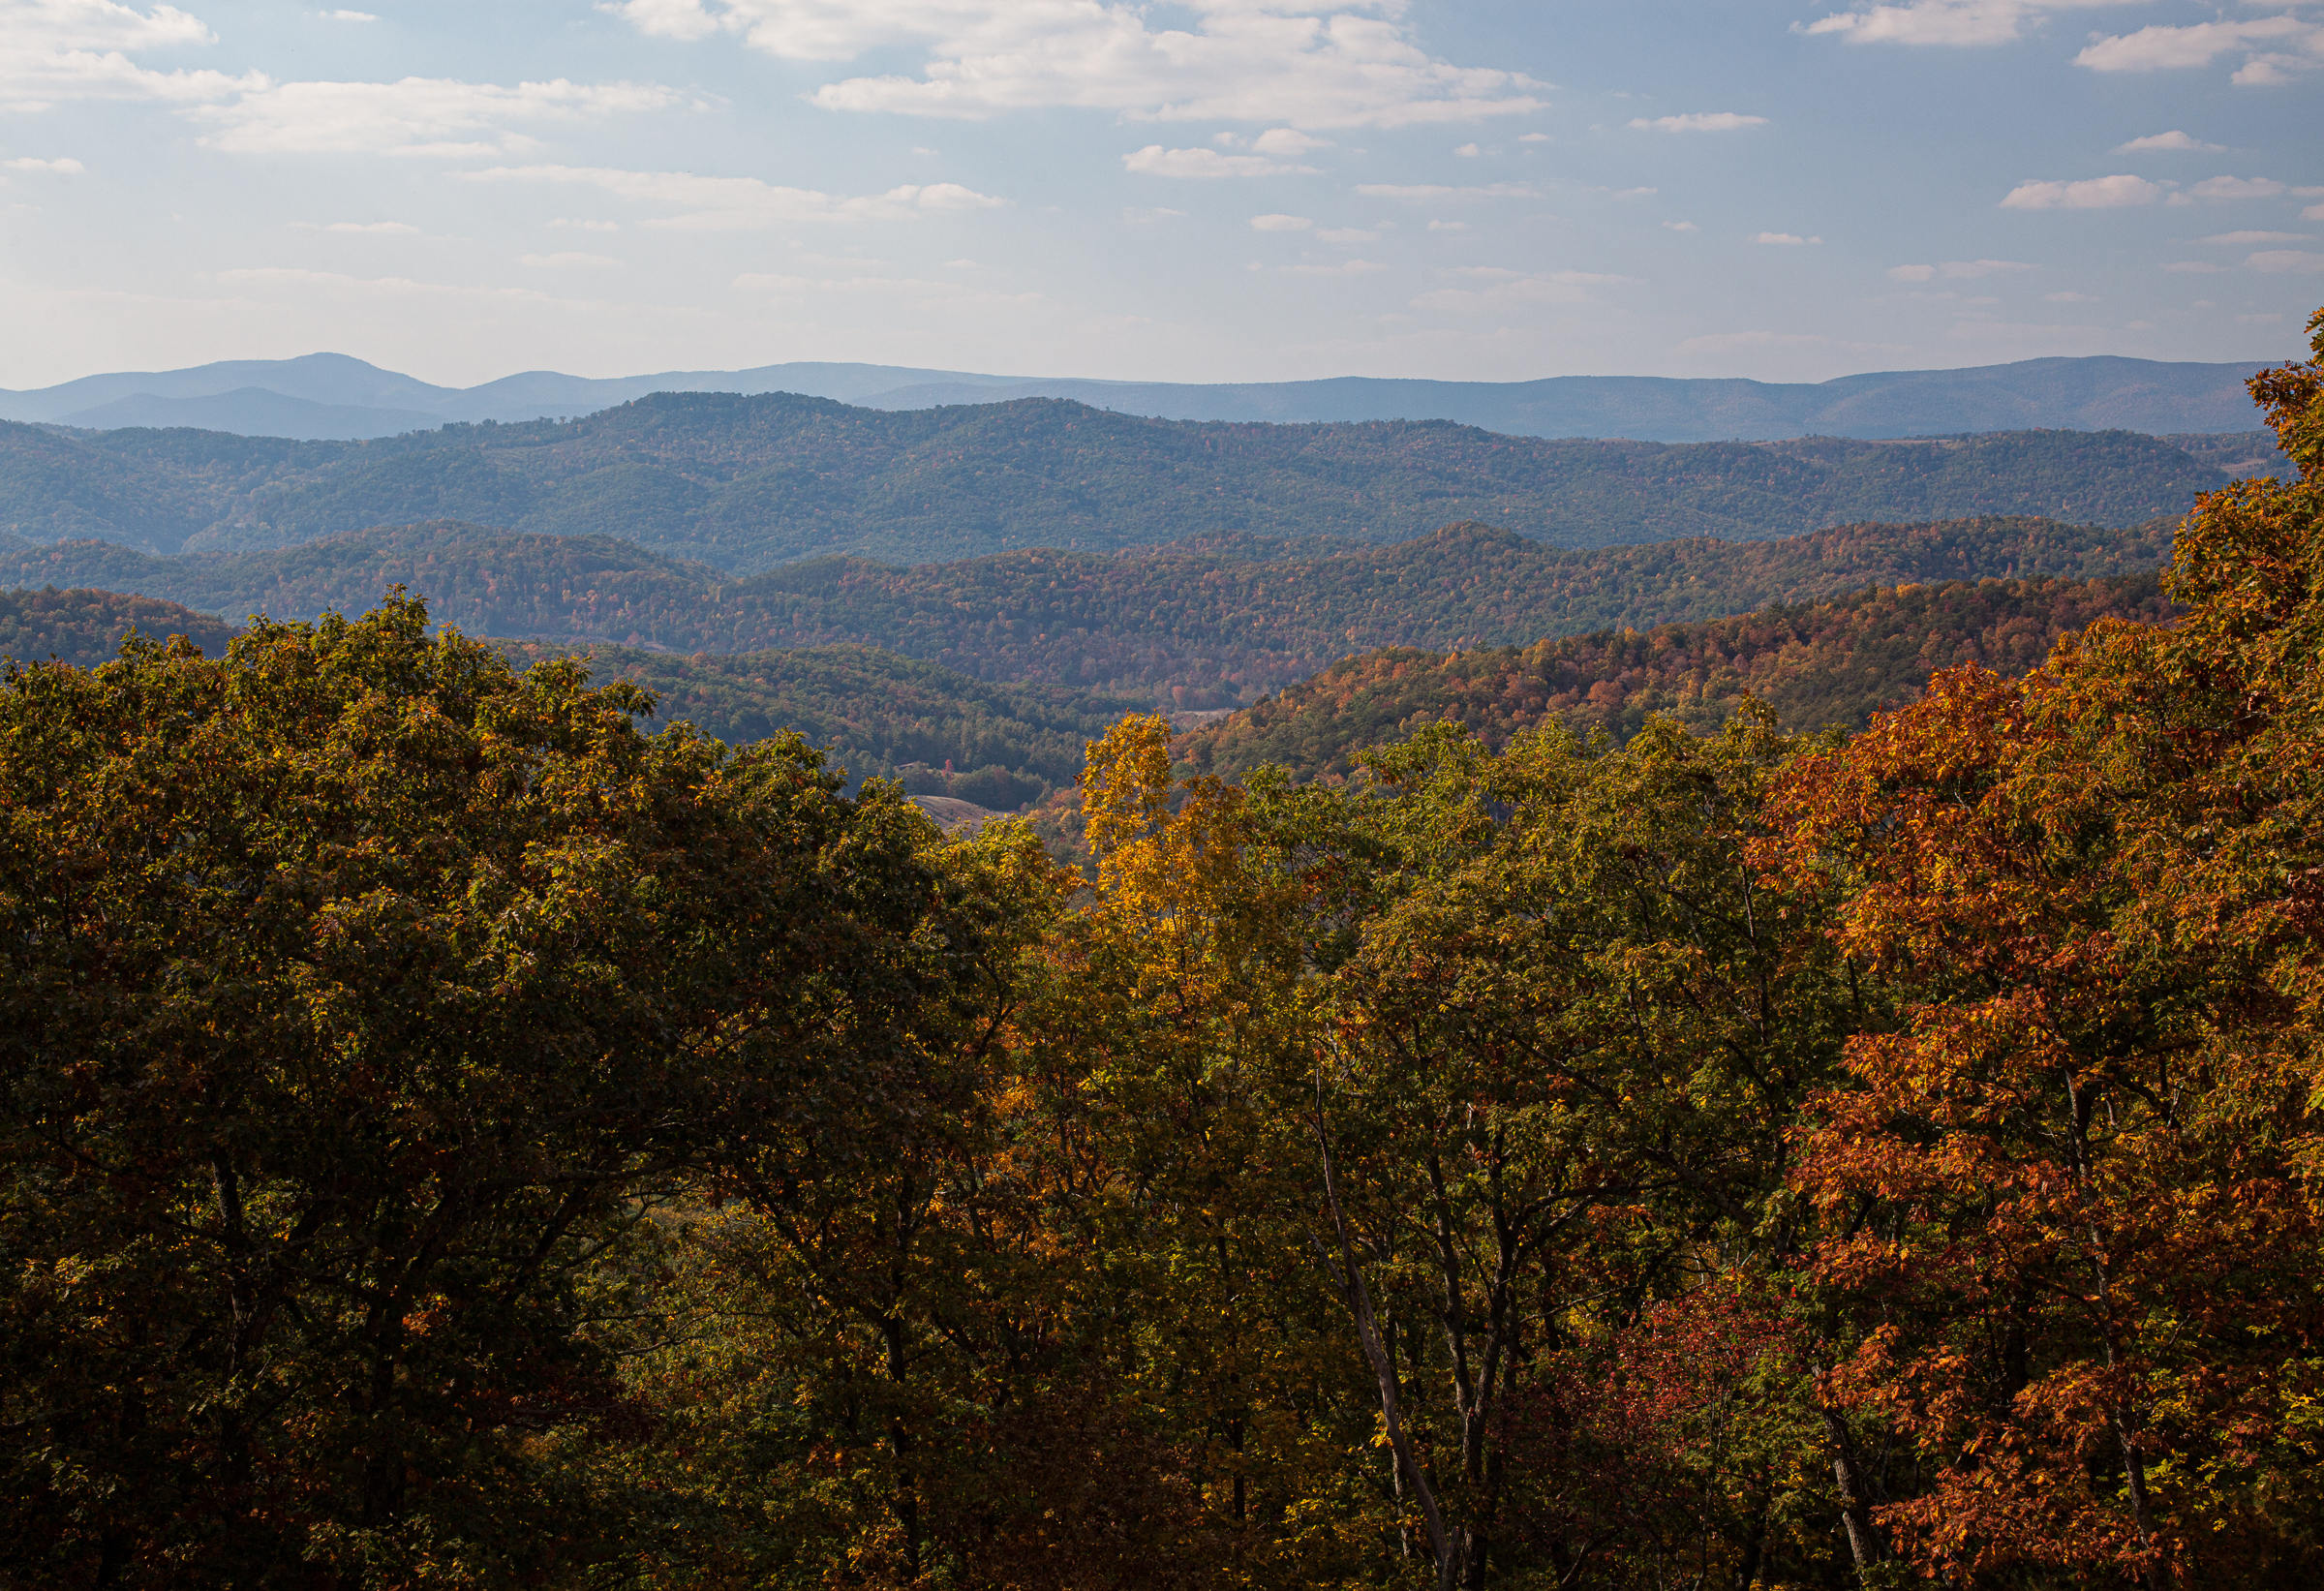 An overlook within George Washington National Forest in Highland County, Virginia. This region is critical for the protection of the endangered cow knob salamander. Photograph by Steven David Johnson